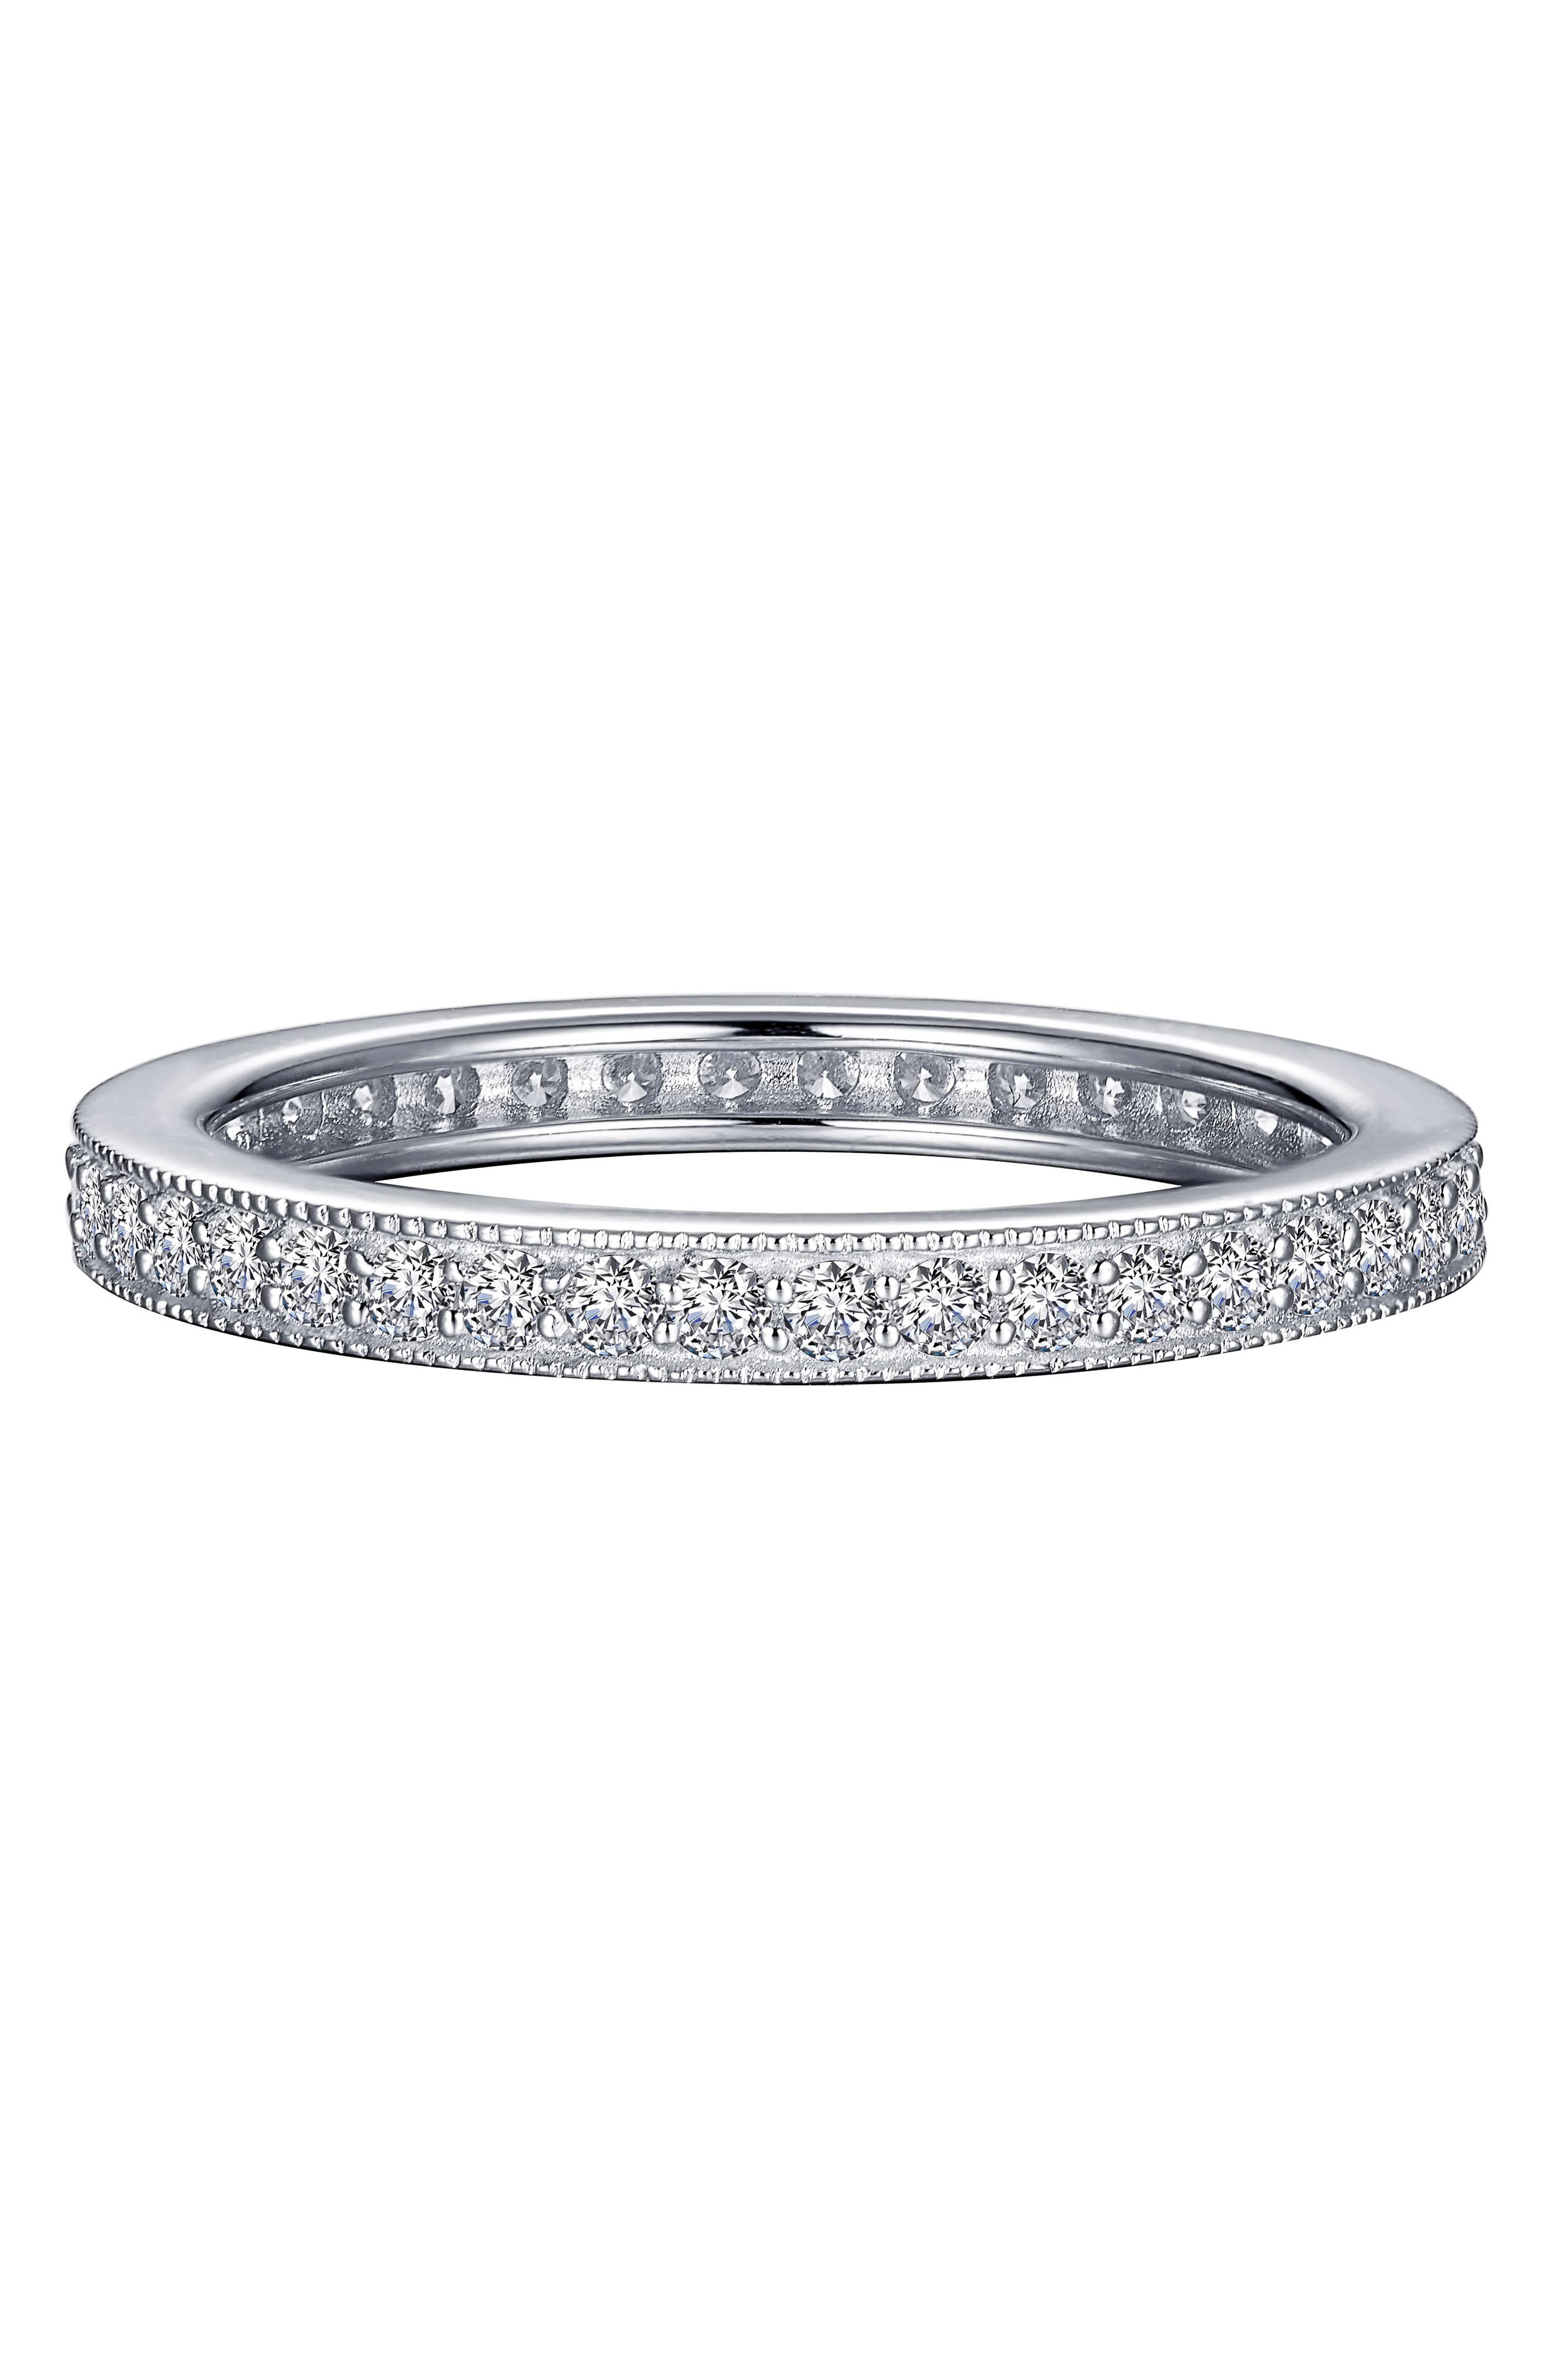 From the brand inspired by the Gaelic word for everlasting desire, this slender band boasts ornate milgrain detail accented by sparkling simulated diamonds. Style Name: Lafonn Stackable Eternity Band Ring. Style Number: 5887630. Available in stores.